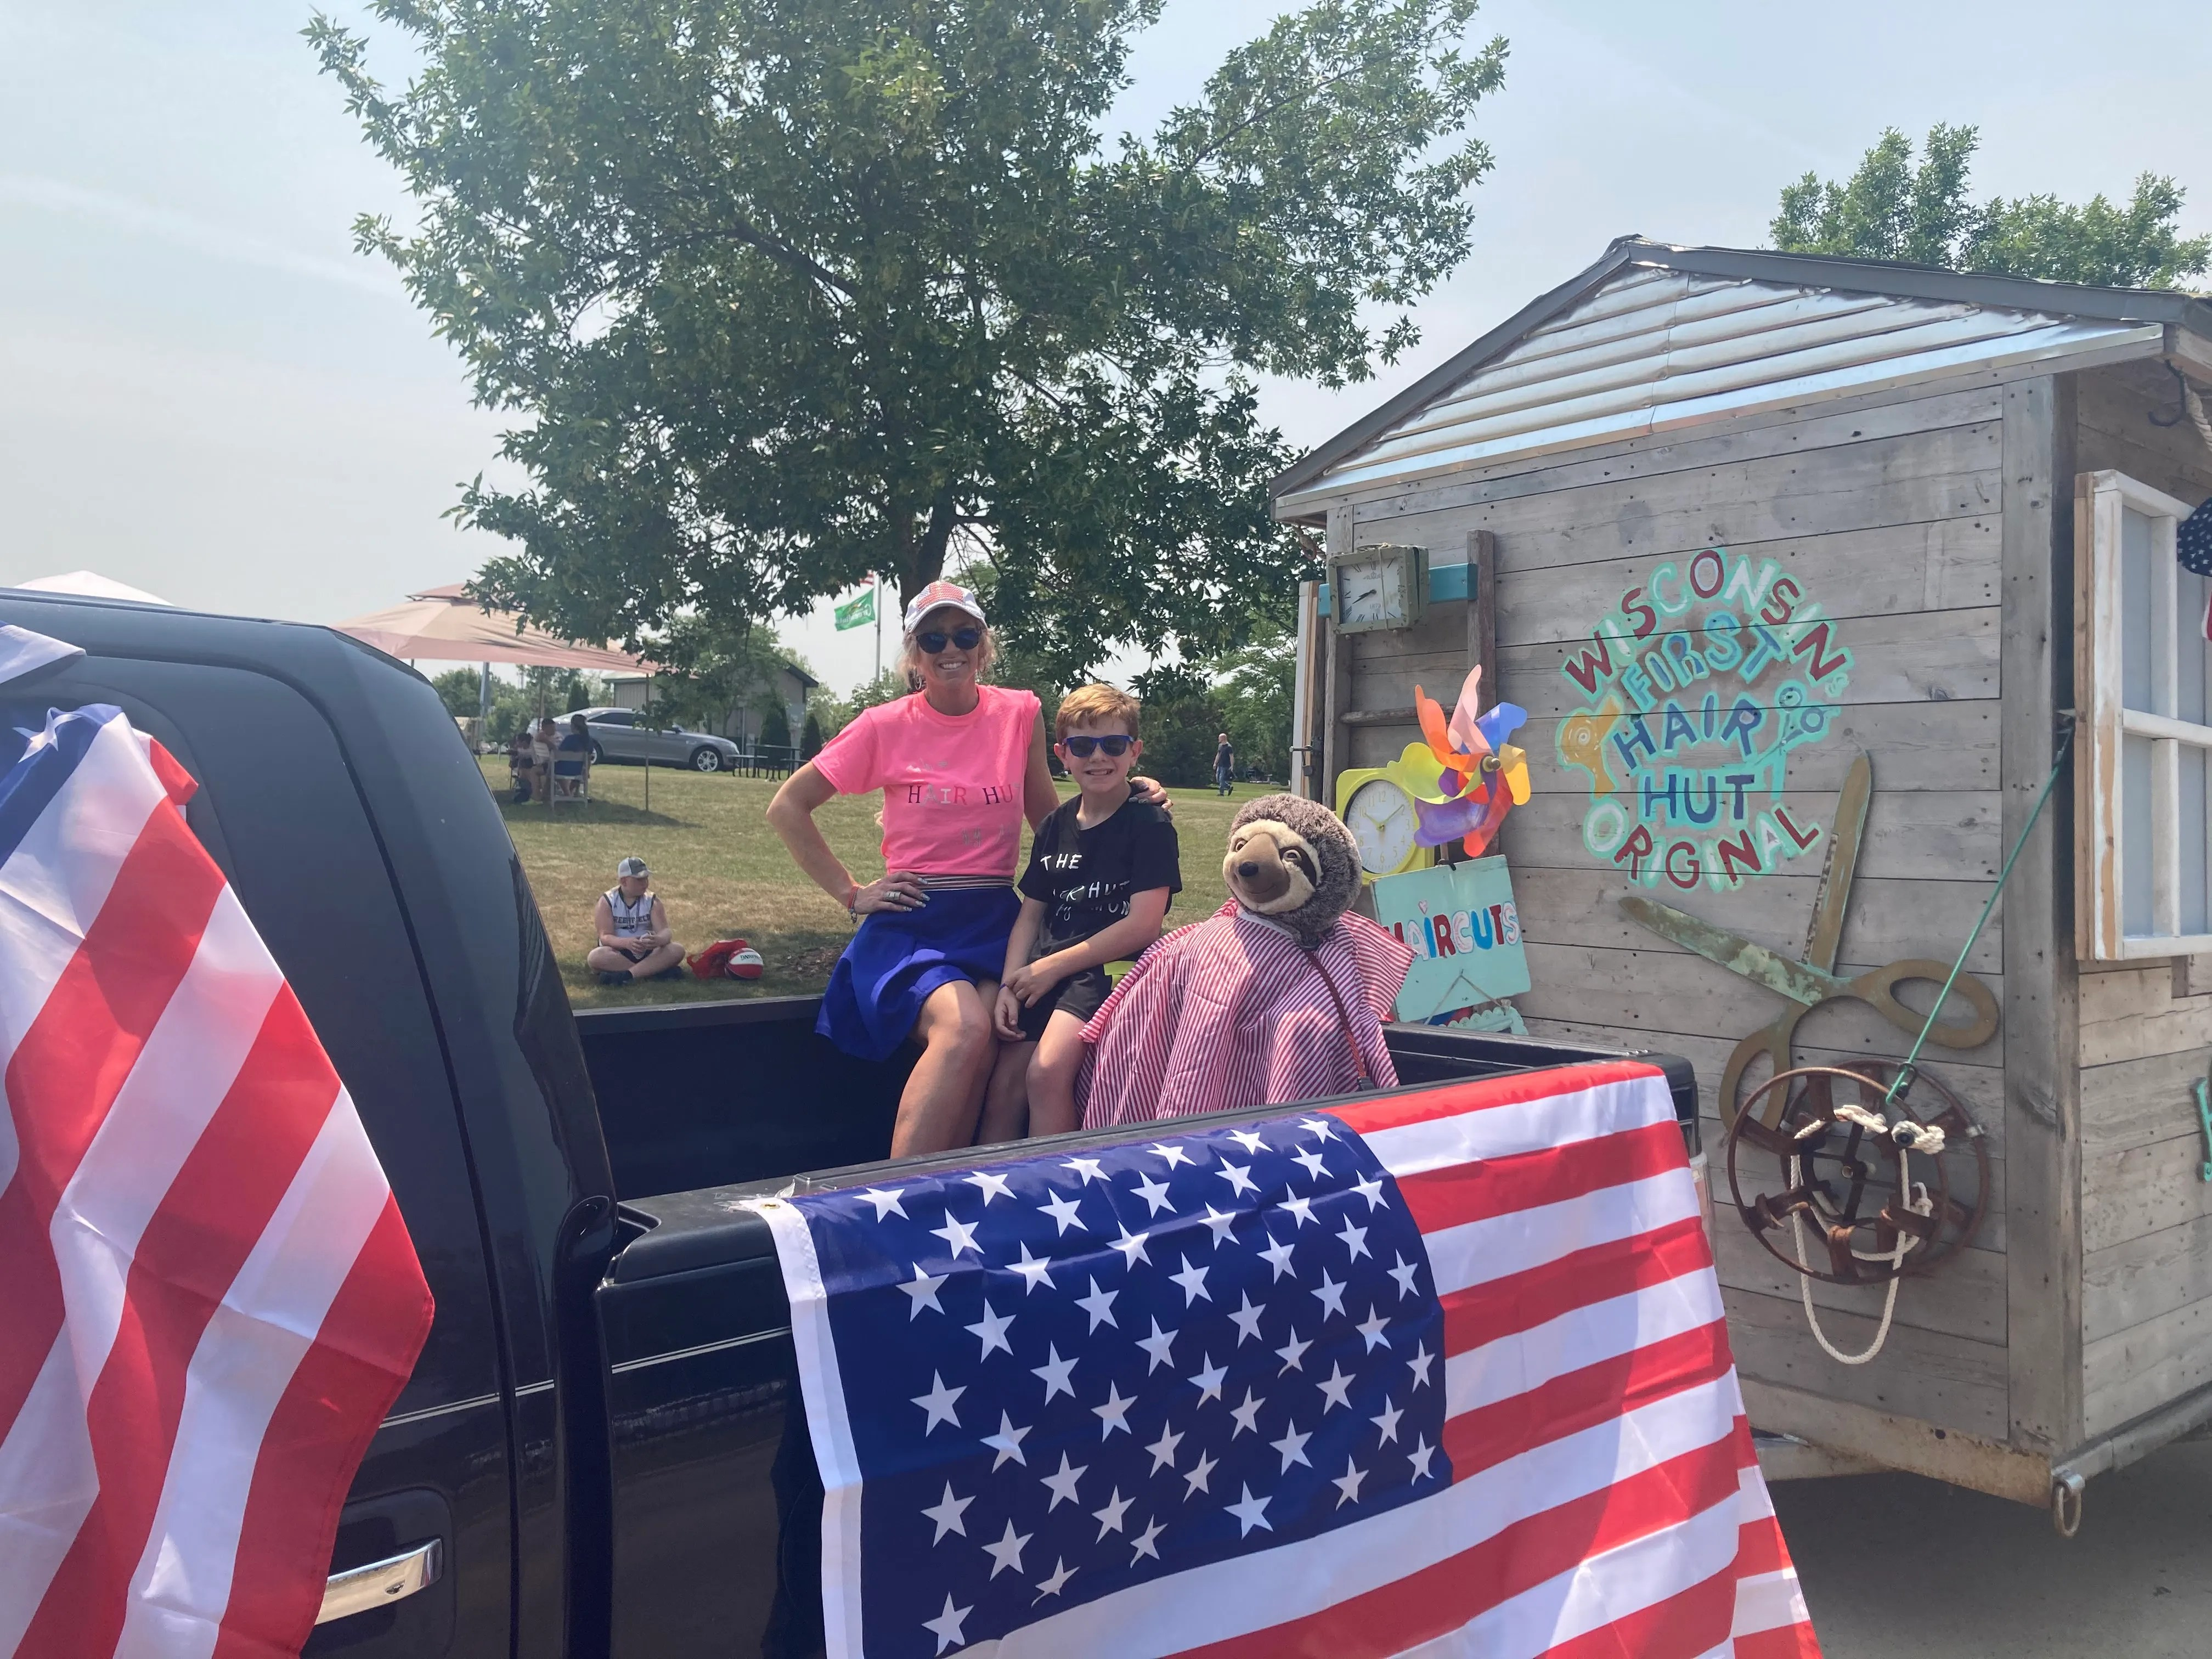 Mandy Jane Ashenfelter pictured with her son Iren Abler, started a mobile hair salon last July called the Hair Hut.  The Hair Hut goes to places in the greater Milwaukee area for $10 haircuts.